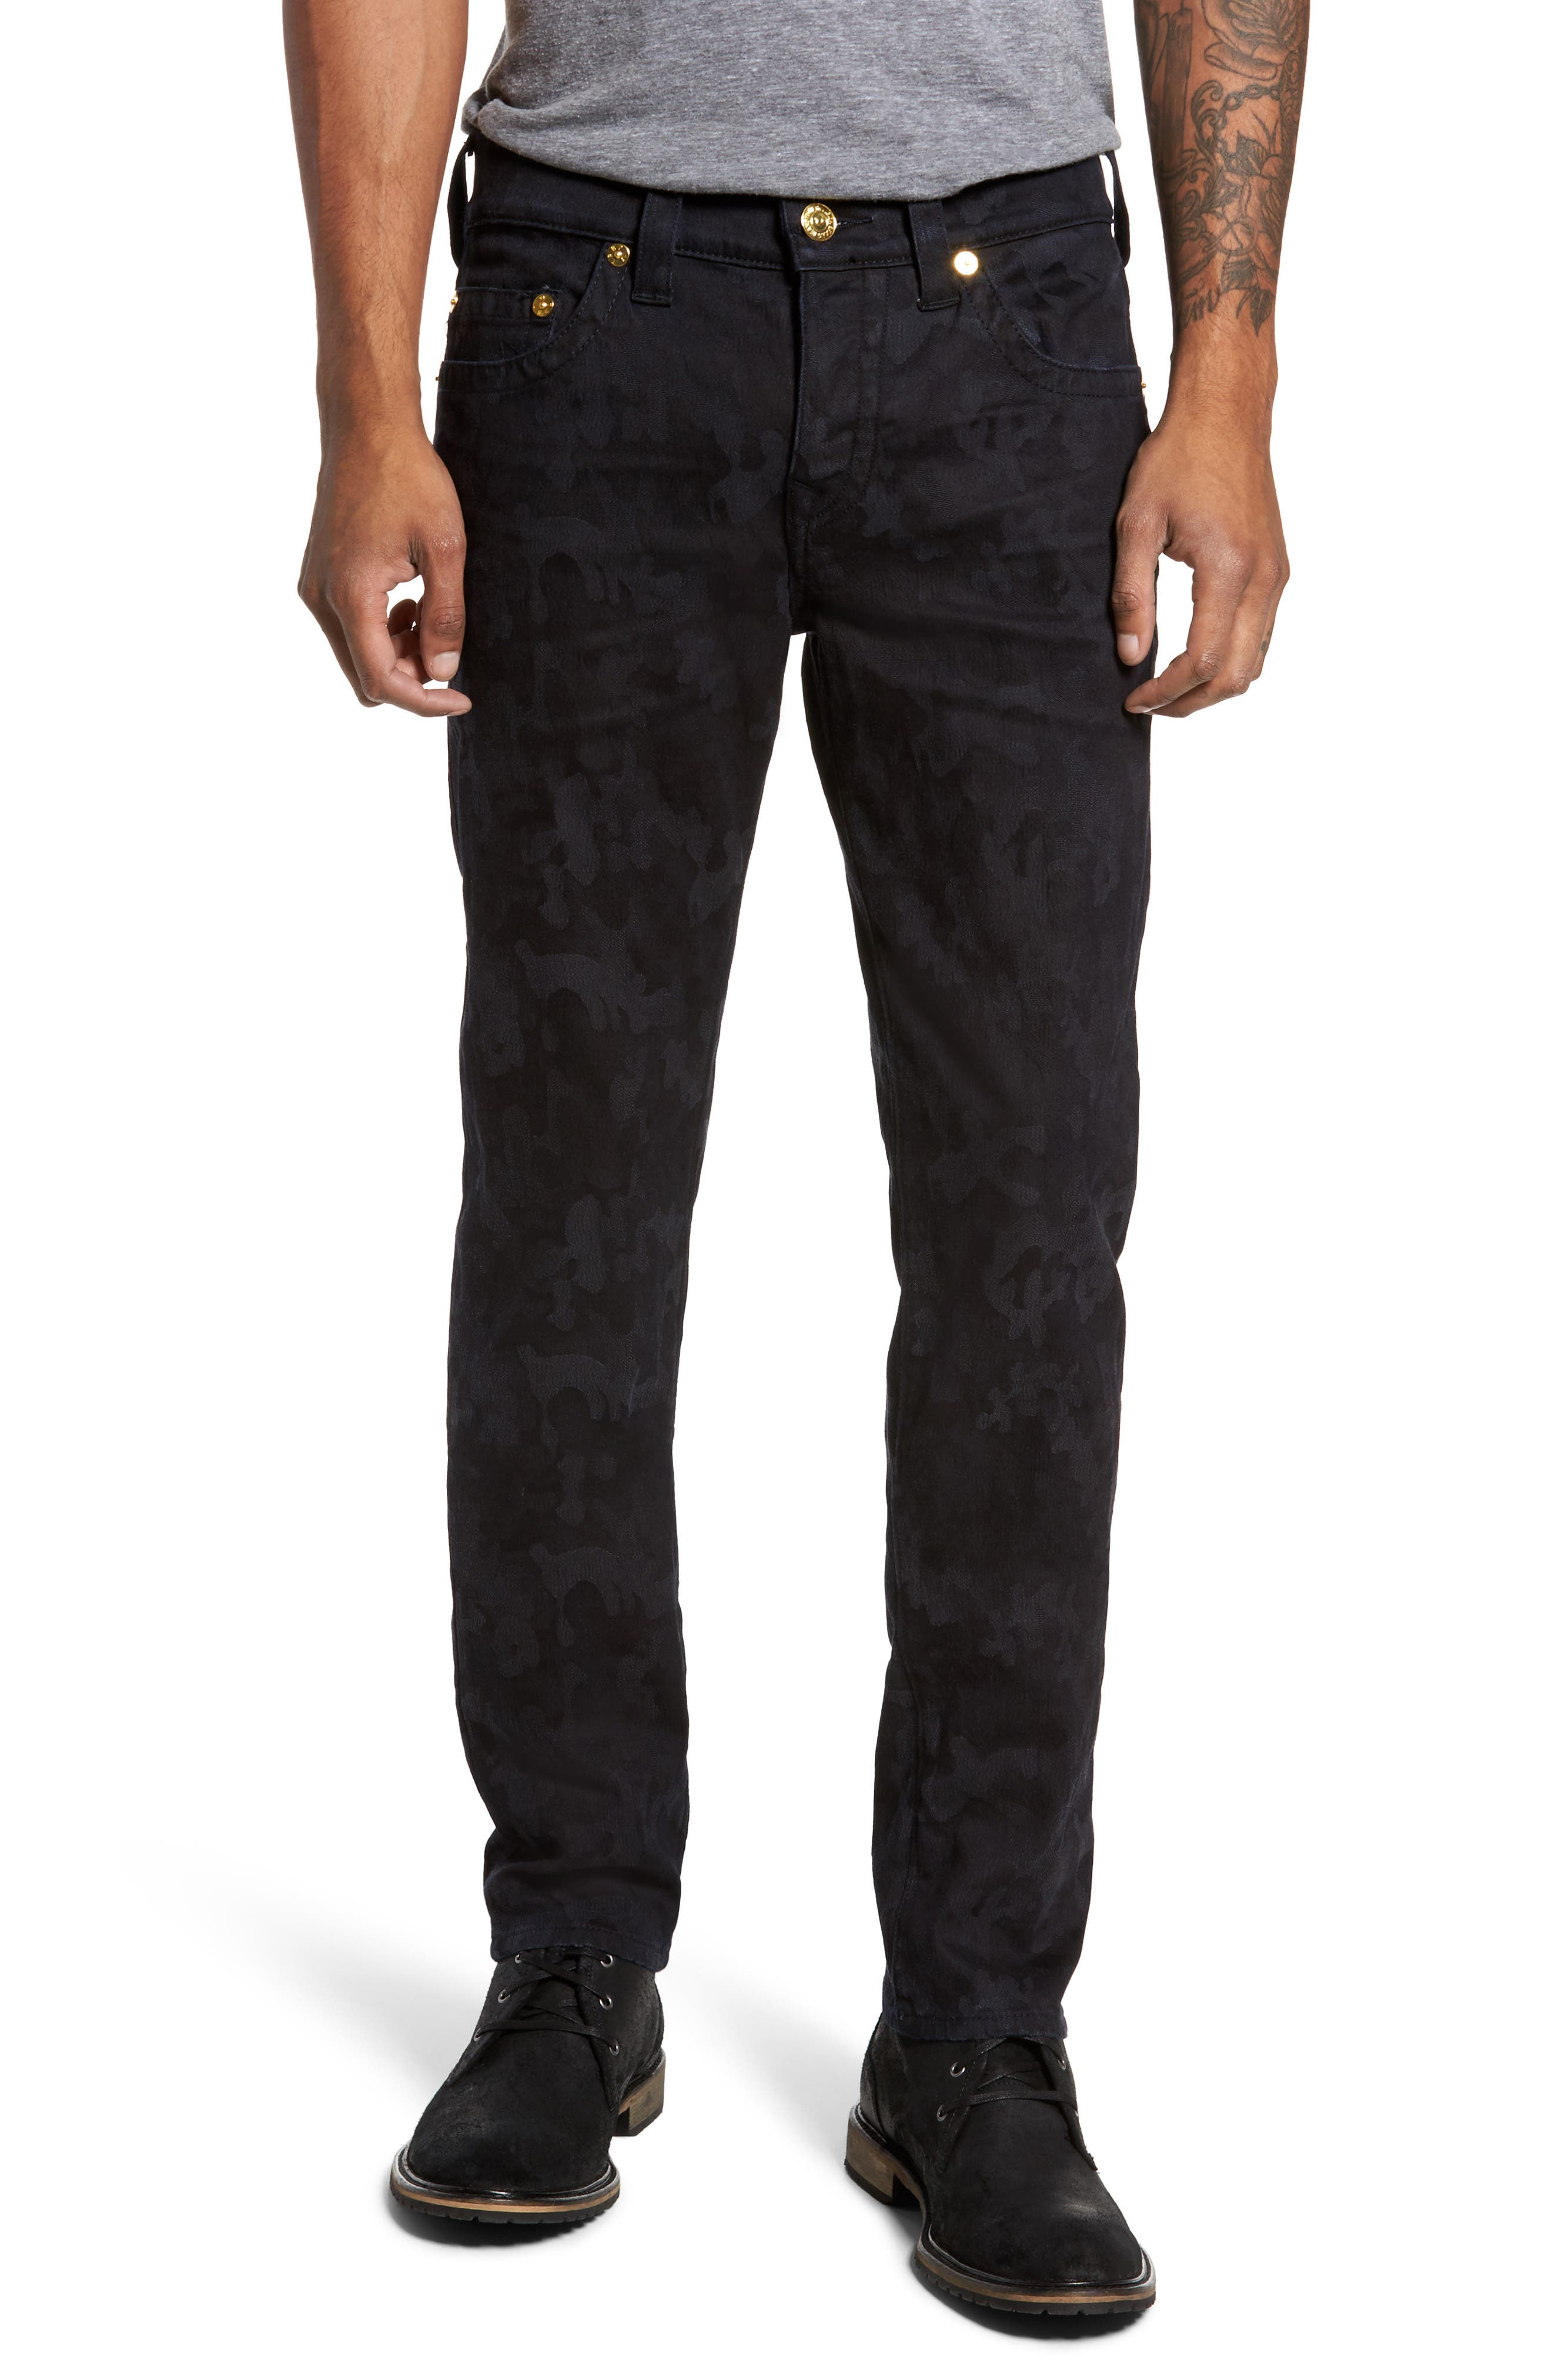 Main Image - True Religion Brand Jeans Rocco Skinny Fit Jeans (Midnight Camo)